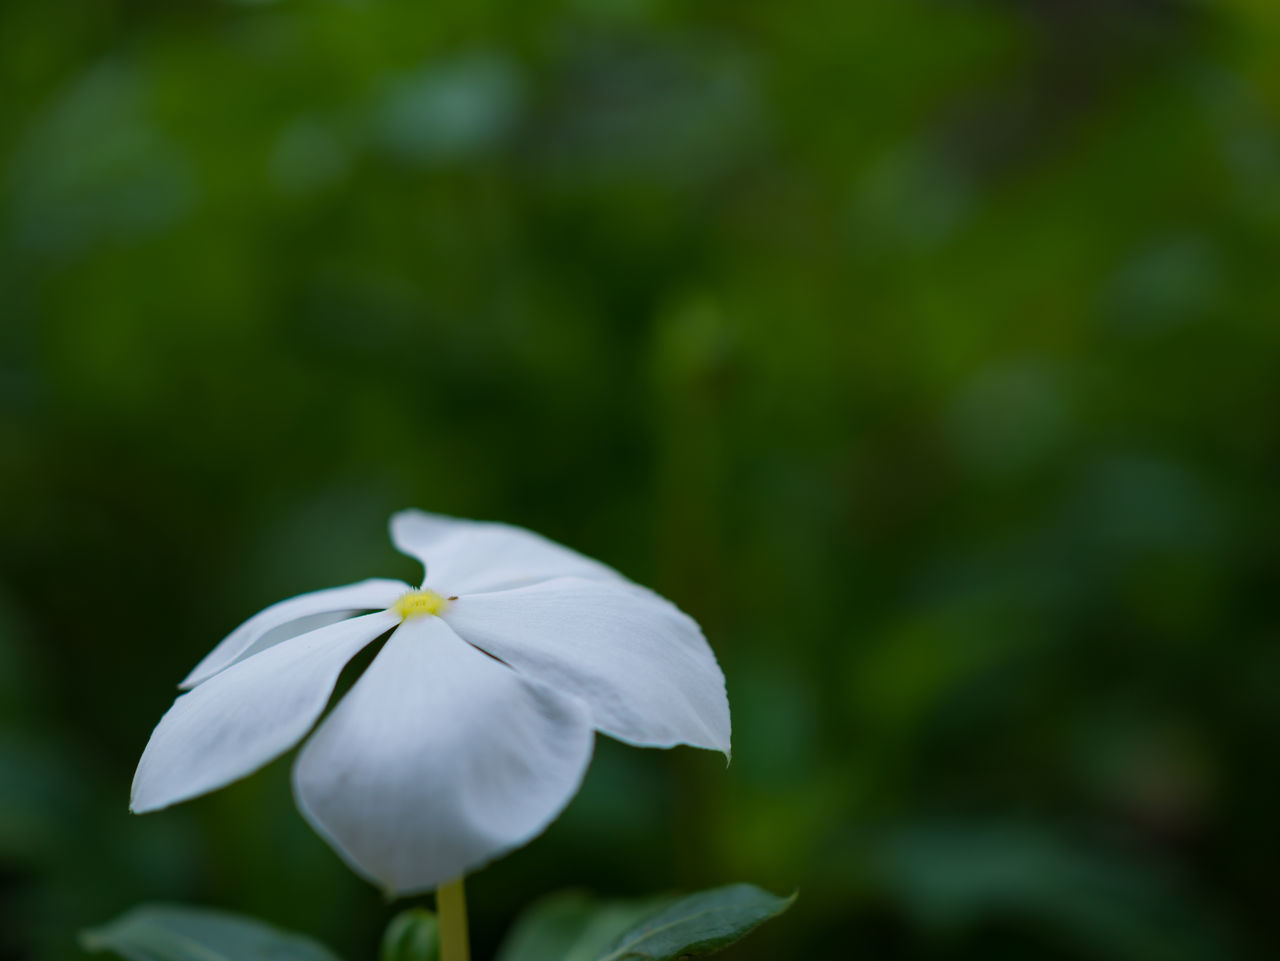 White flower on green background.Closeup one white flower Background Beautiful Bloom Botanic Close-up Color Detail Flora Floral Flower Growth Leaf Nature Petal Plant Single Flower Small Soft Space White